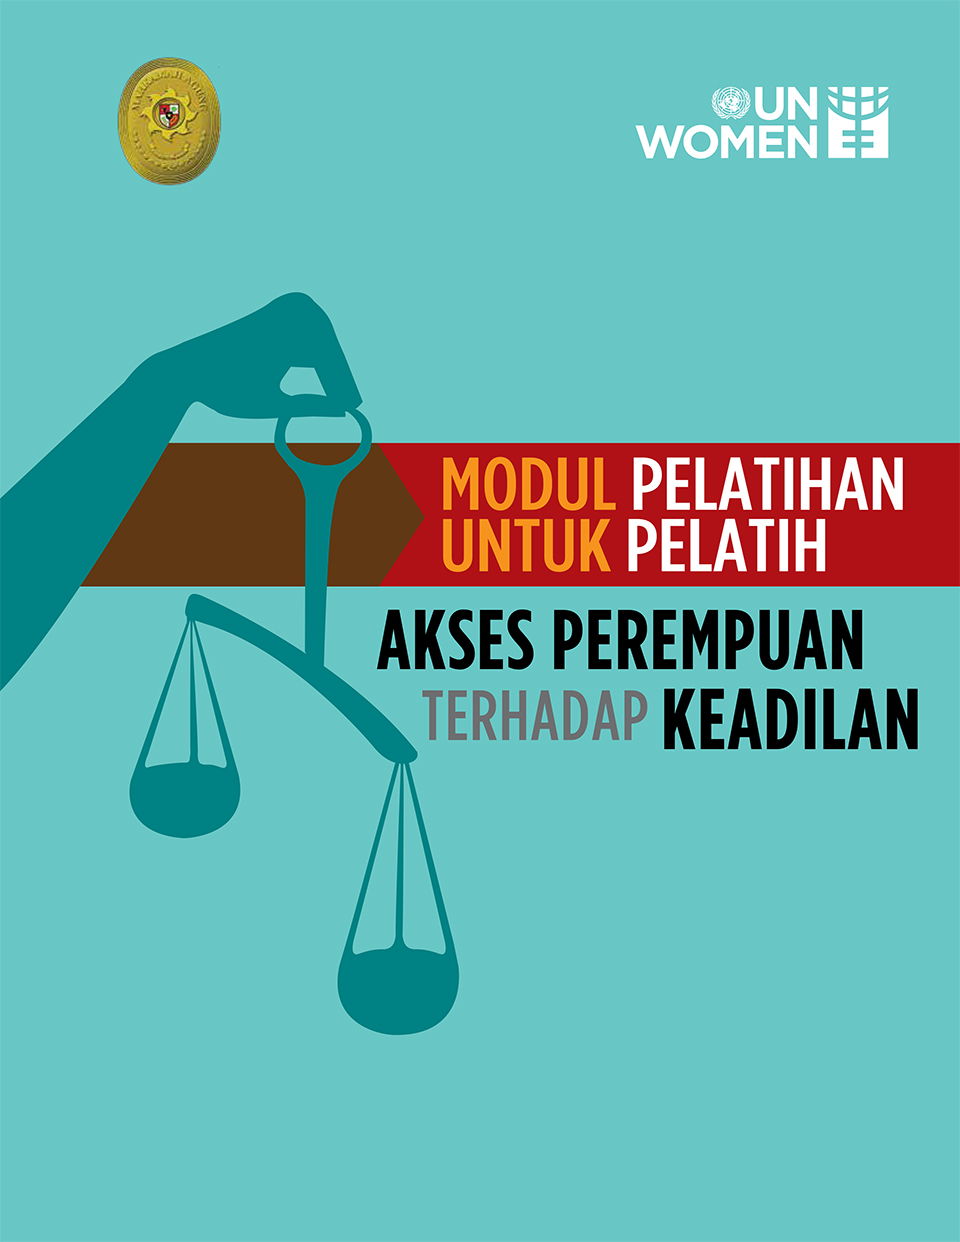 Training of Trainers module on Women's Access to Justice